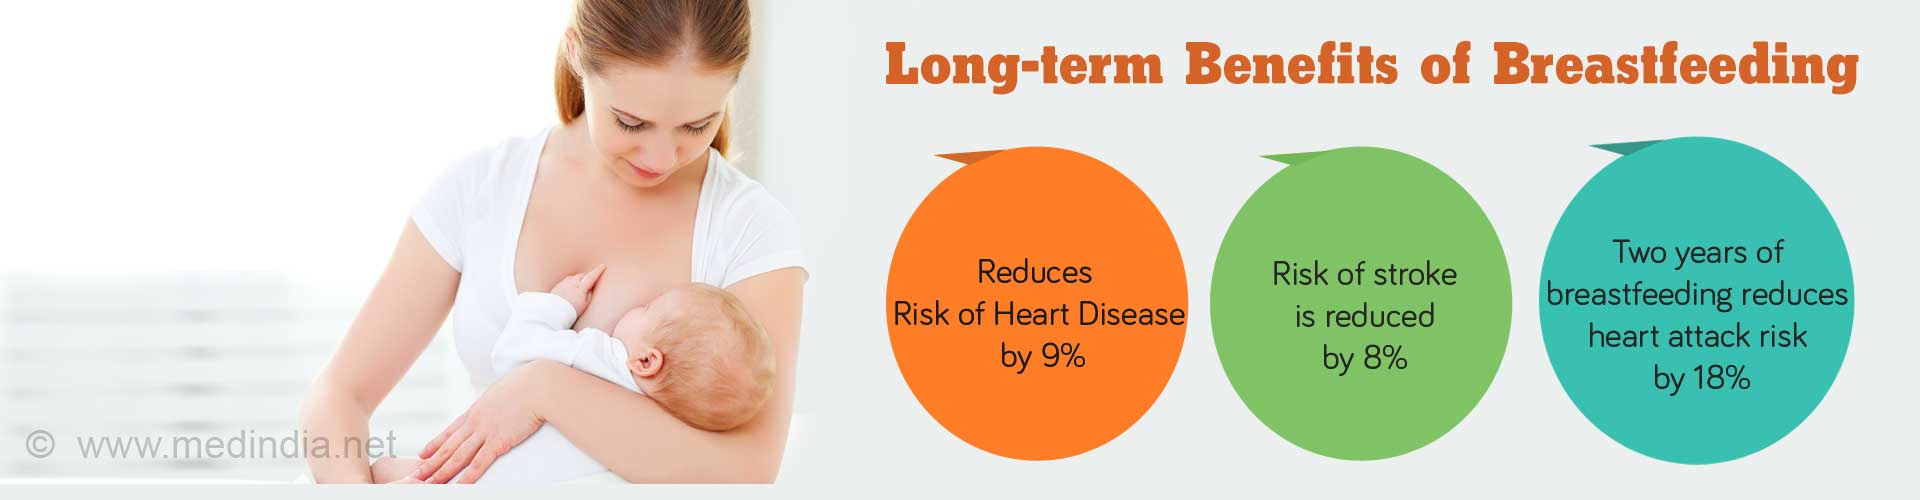 Breastfeed Your Baby to Reduce Risk of Heart Disease, Stroke